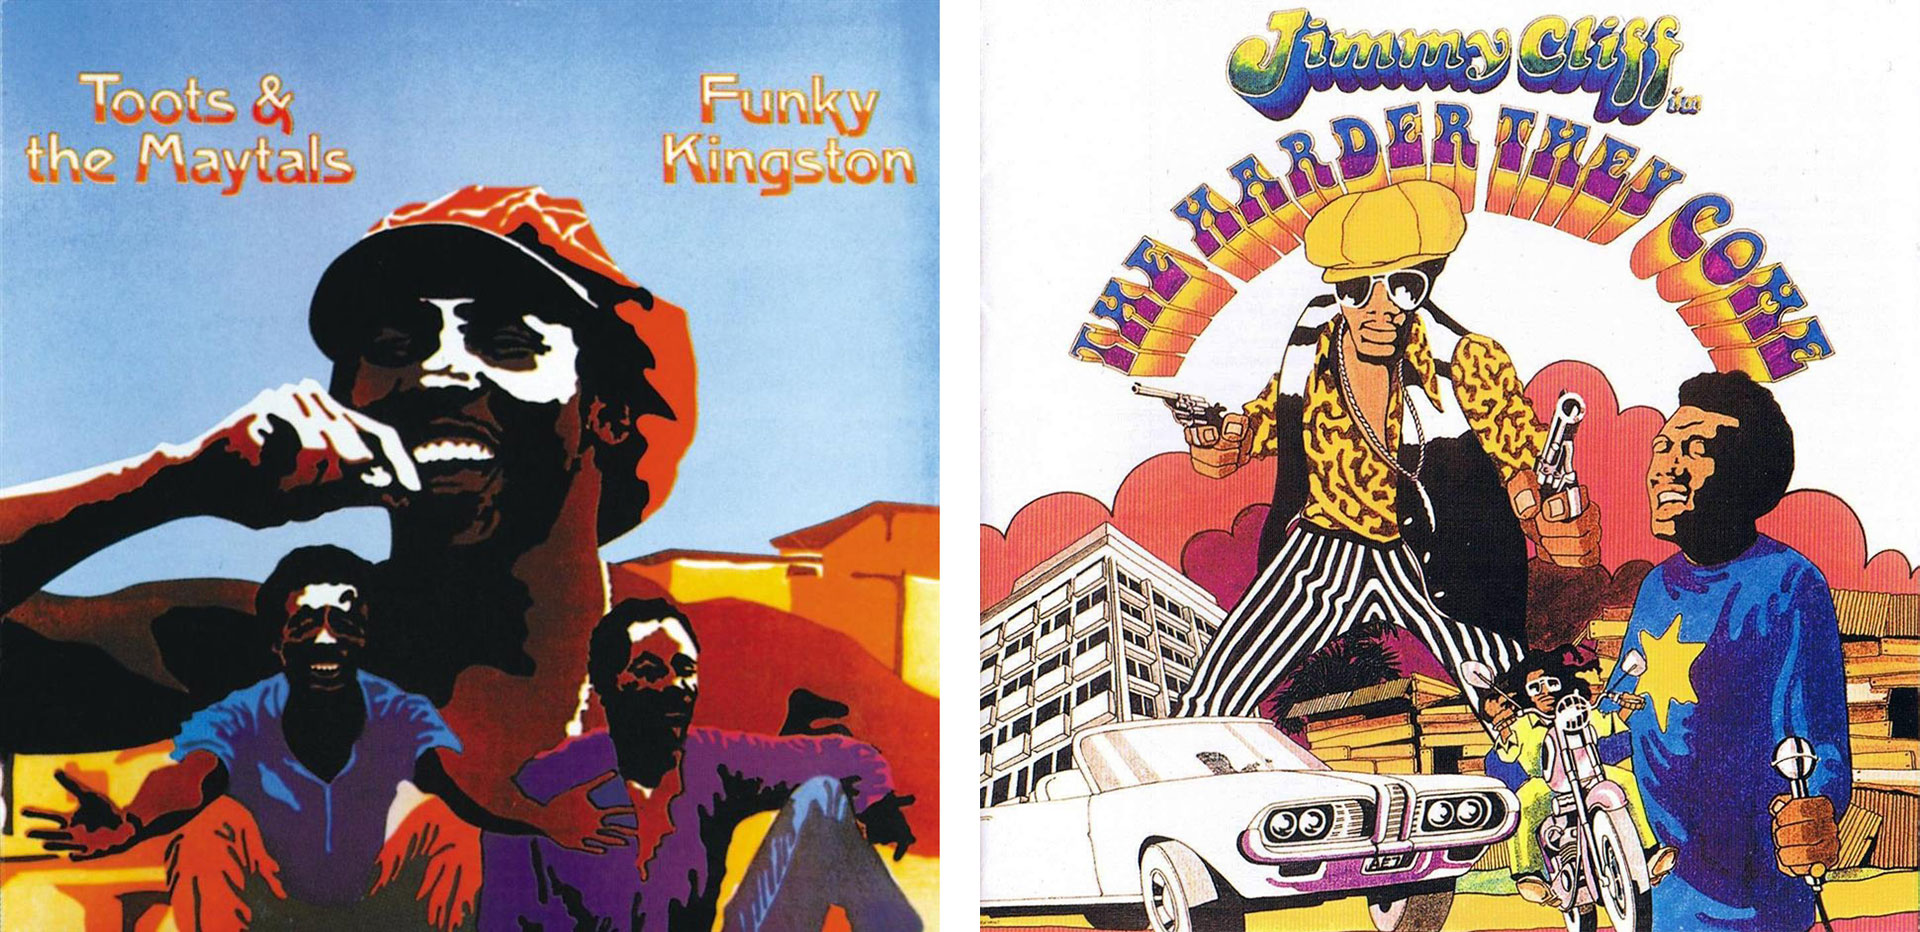 Early moments for Toots and the Maytals' popularity included the albums 'Funky Kingston' (L) and the soundtrack to 'The Harder They Come' (R).